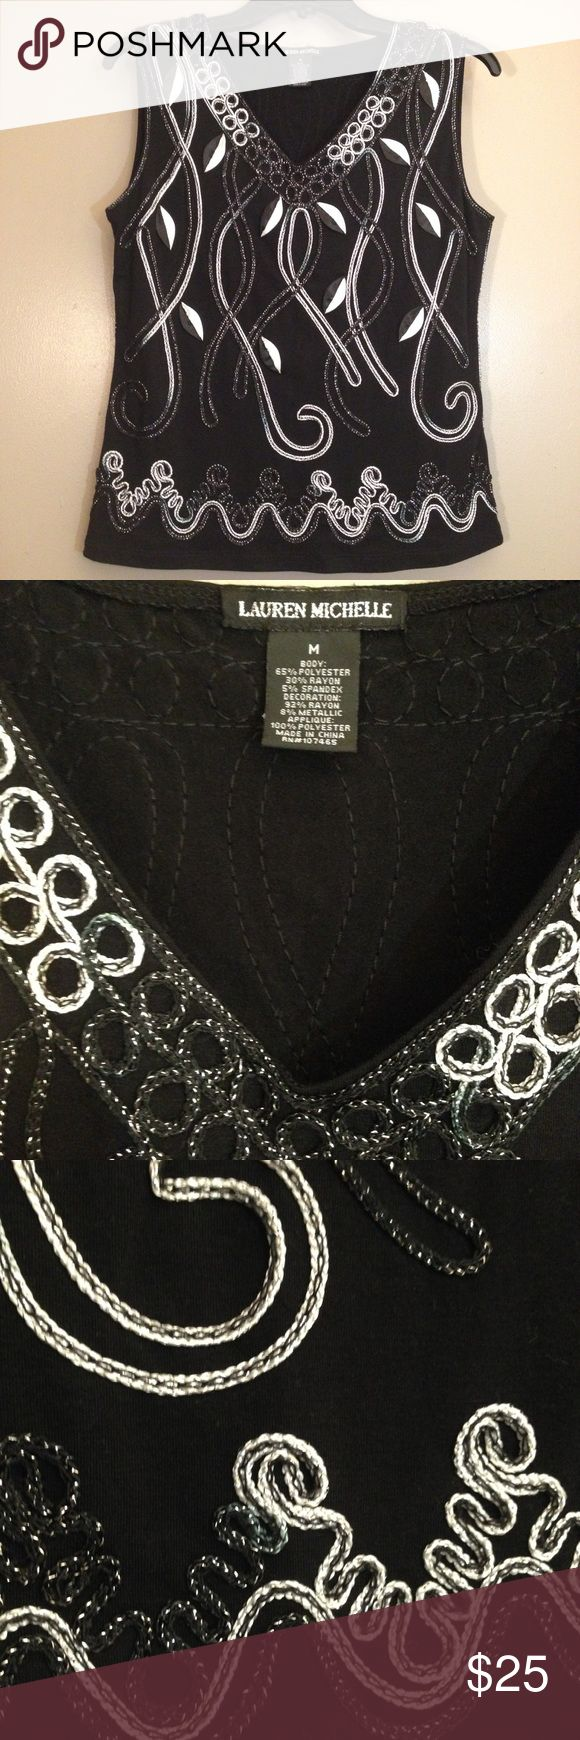 Festive, decorative vest, like new, size M A very festive, decorative vest that will spark your outfit. EUC, worn only once. Size Medium. Lauren Michelle Tops